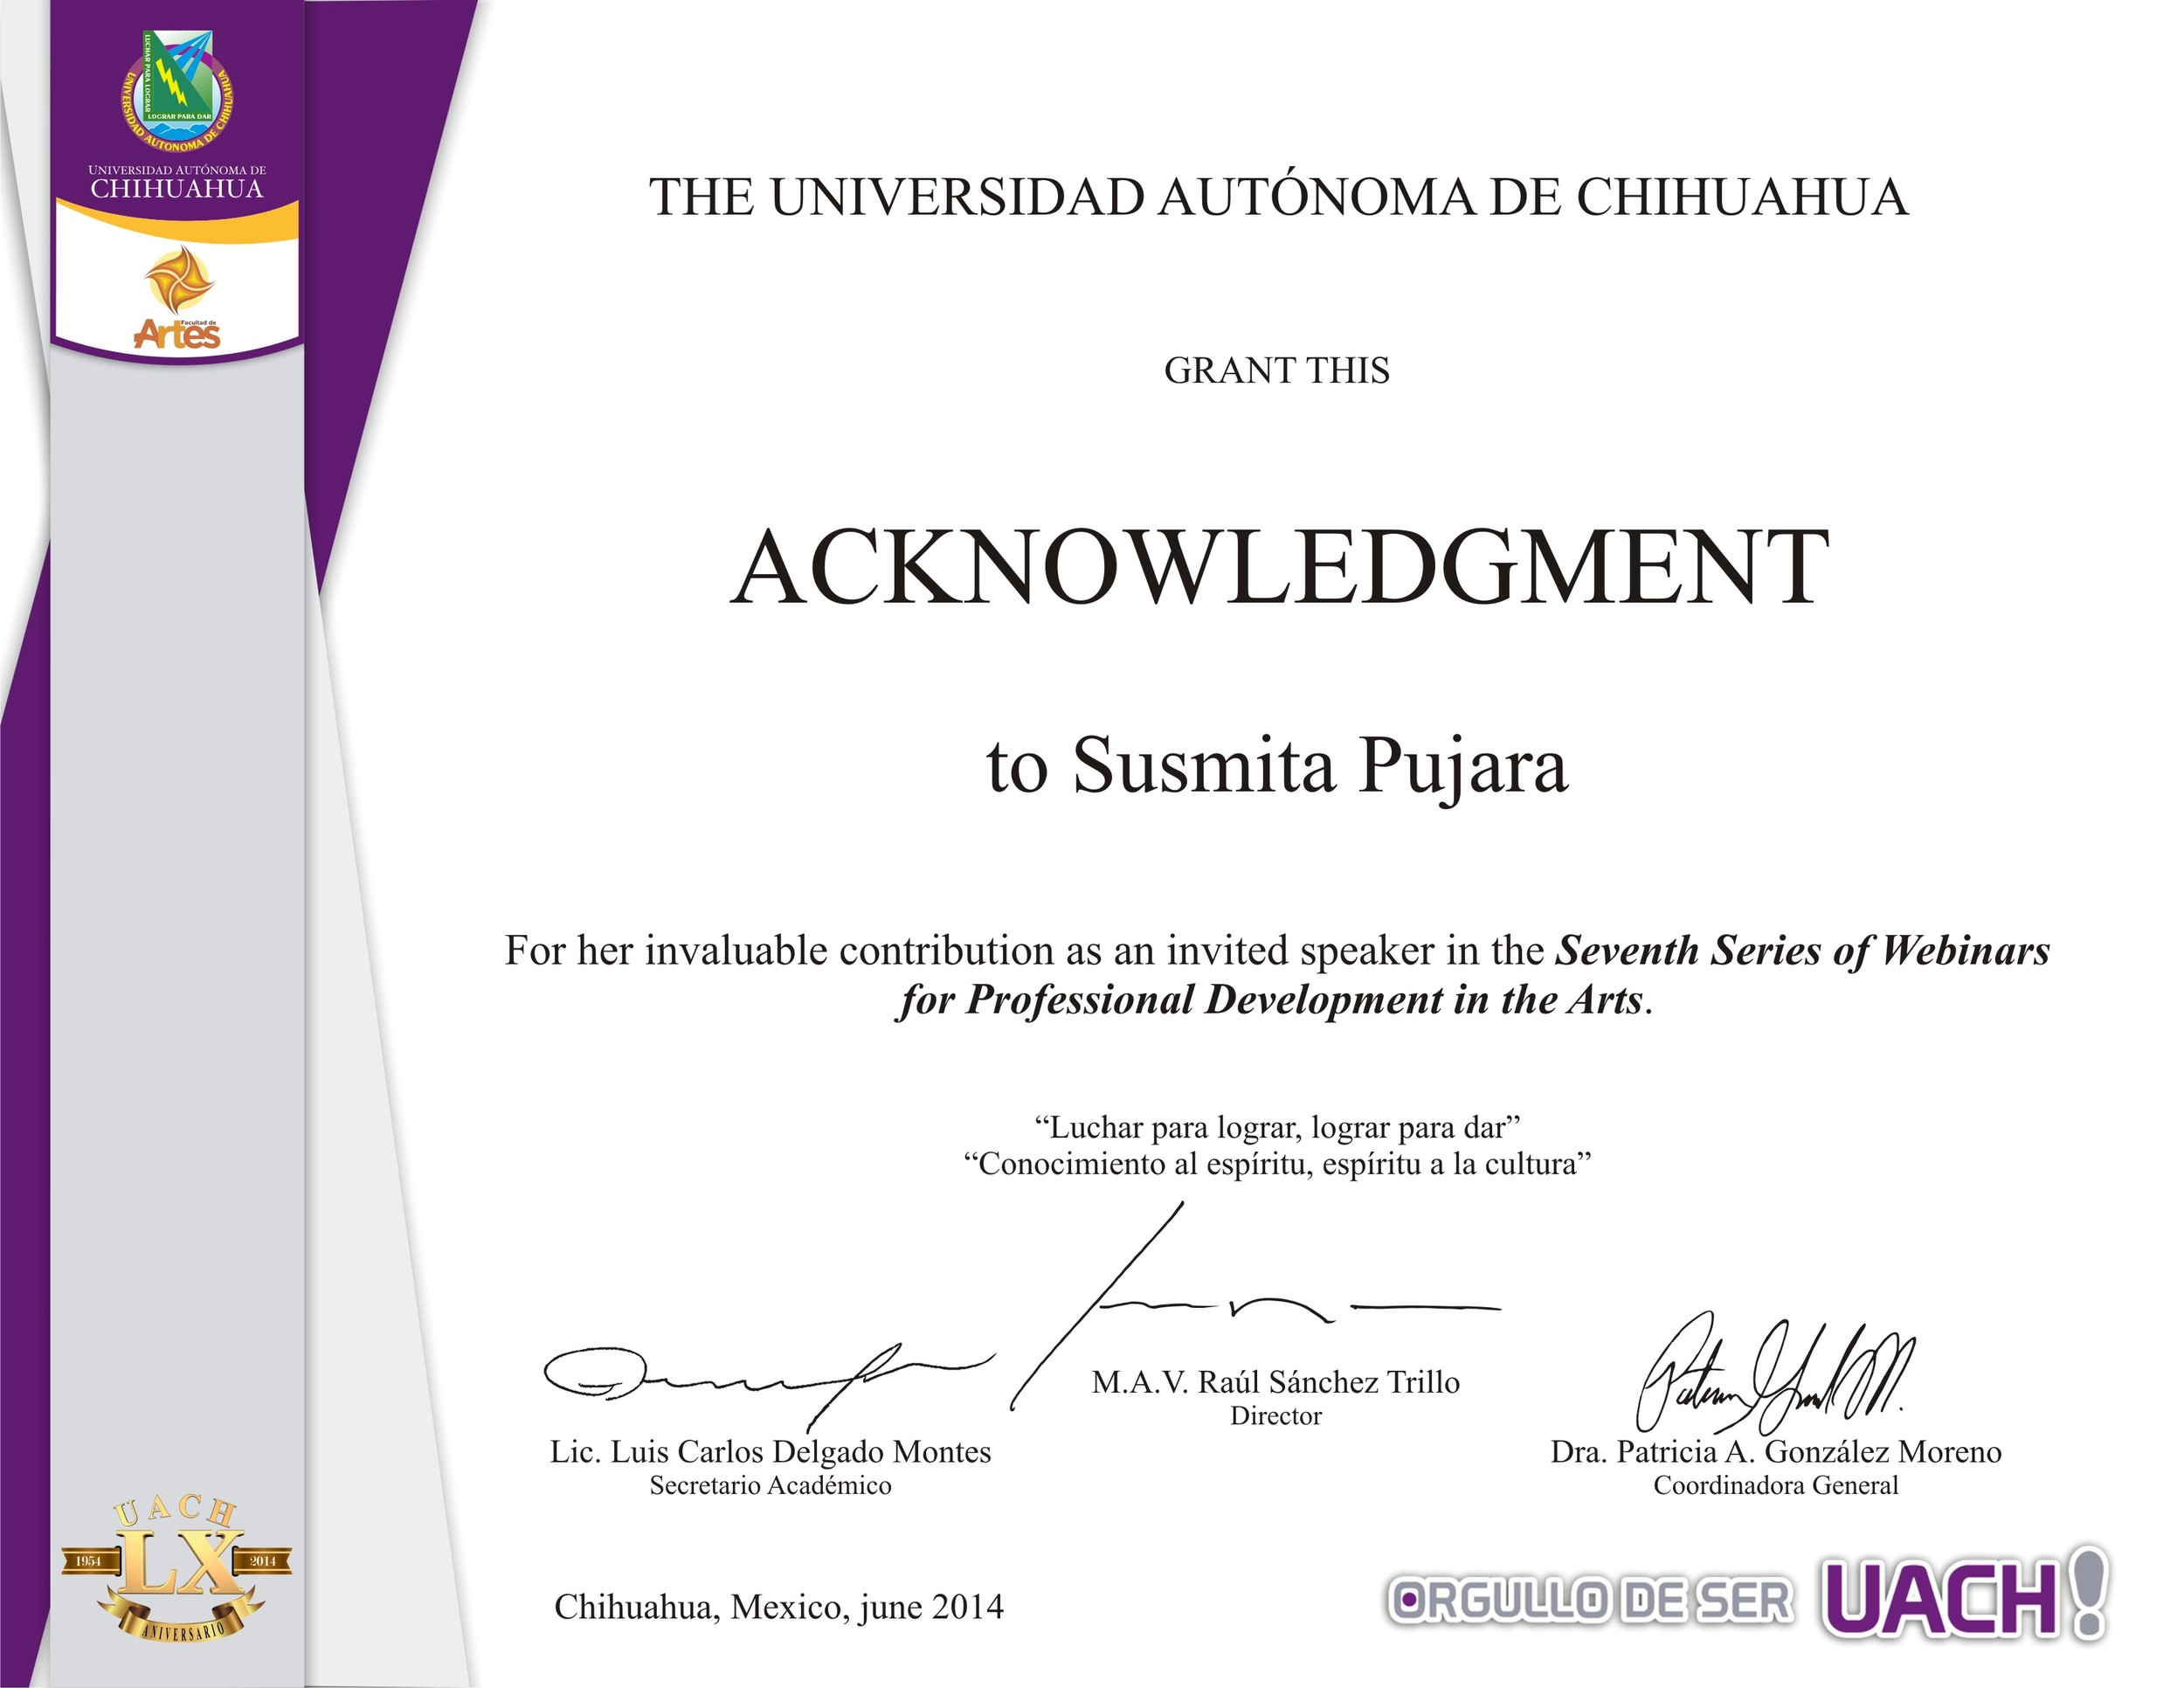 So nice to be sent this from the University of Chihuahua